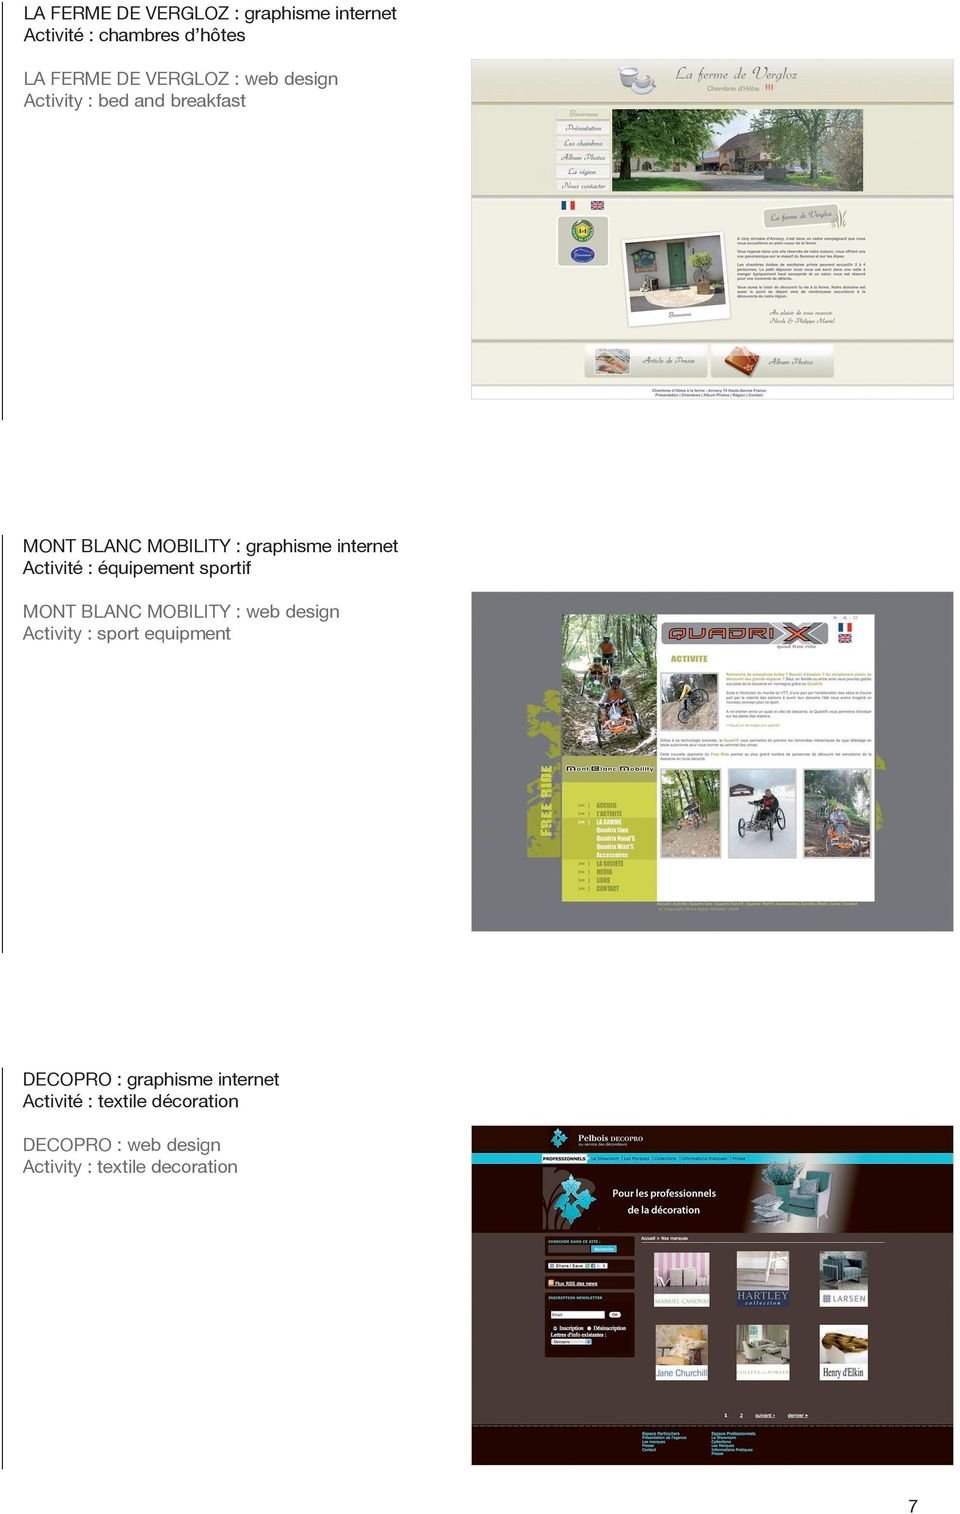 équipement sportif MONT BLANC MOBILITY : web design Activity : sport equipment DECOPRO :